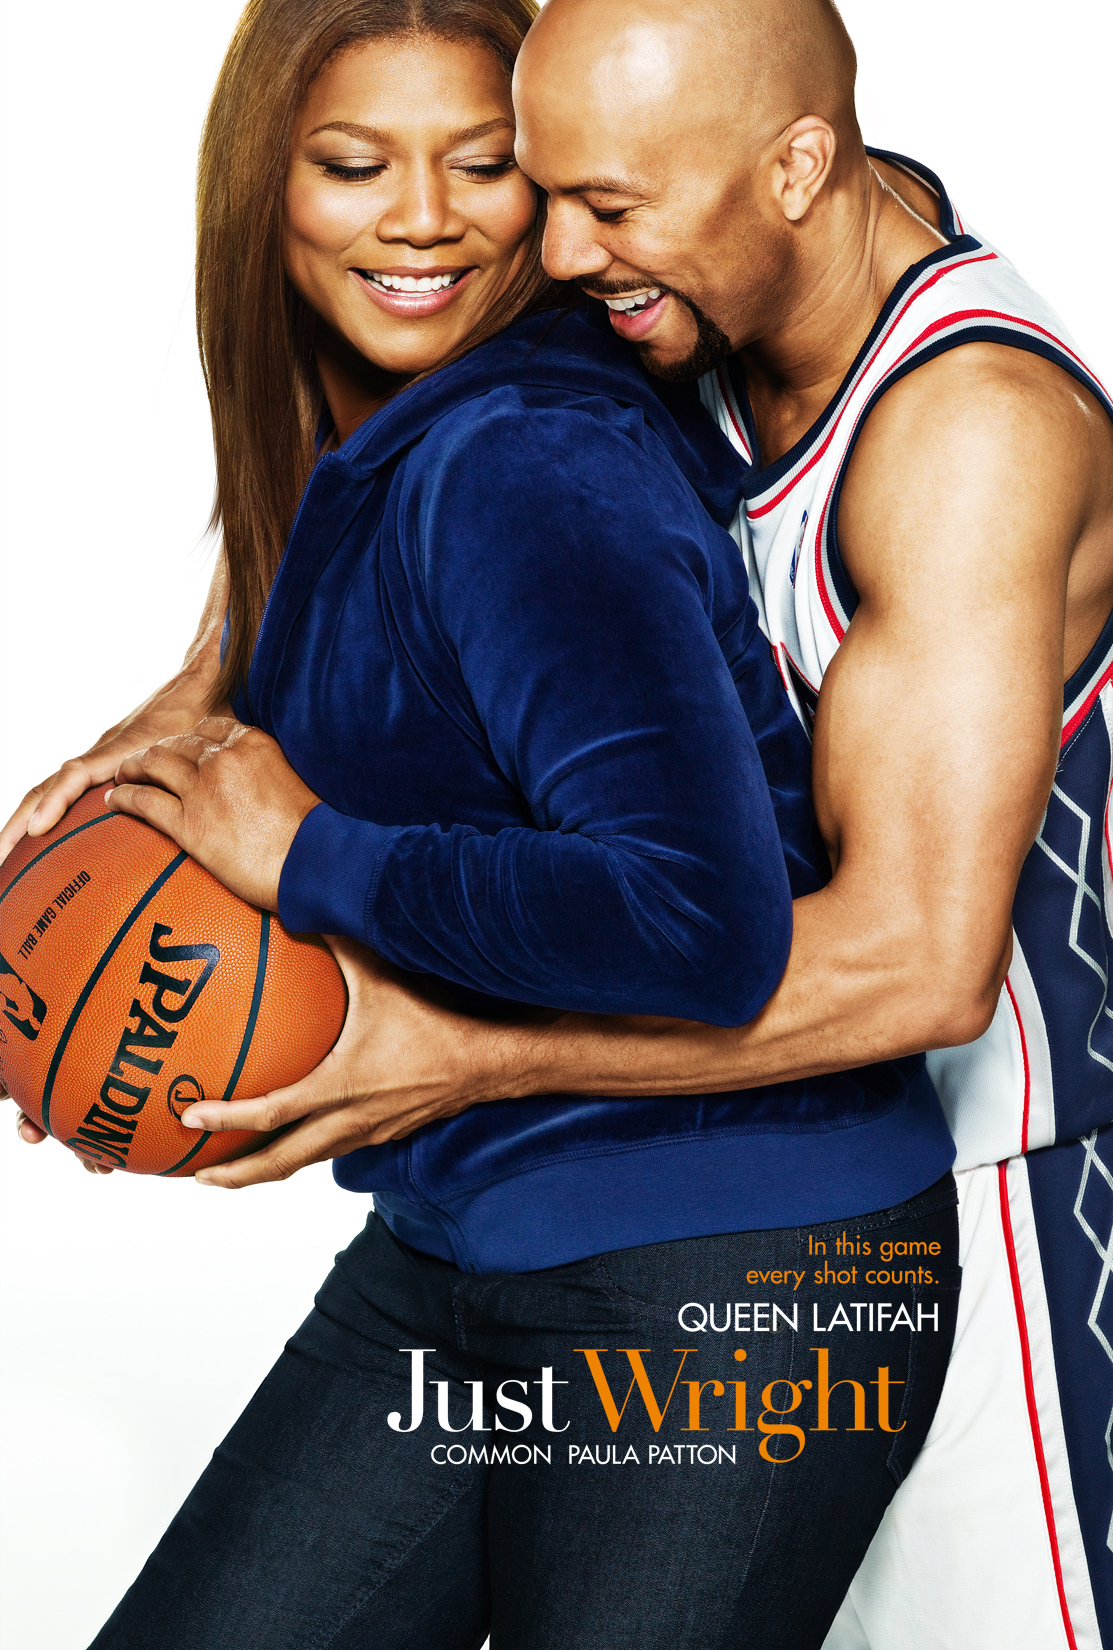 Queen latifah and common dating